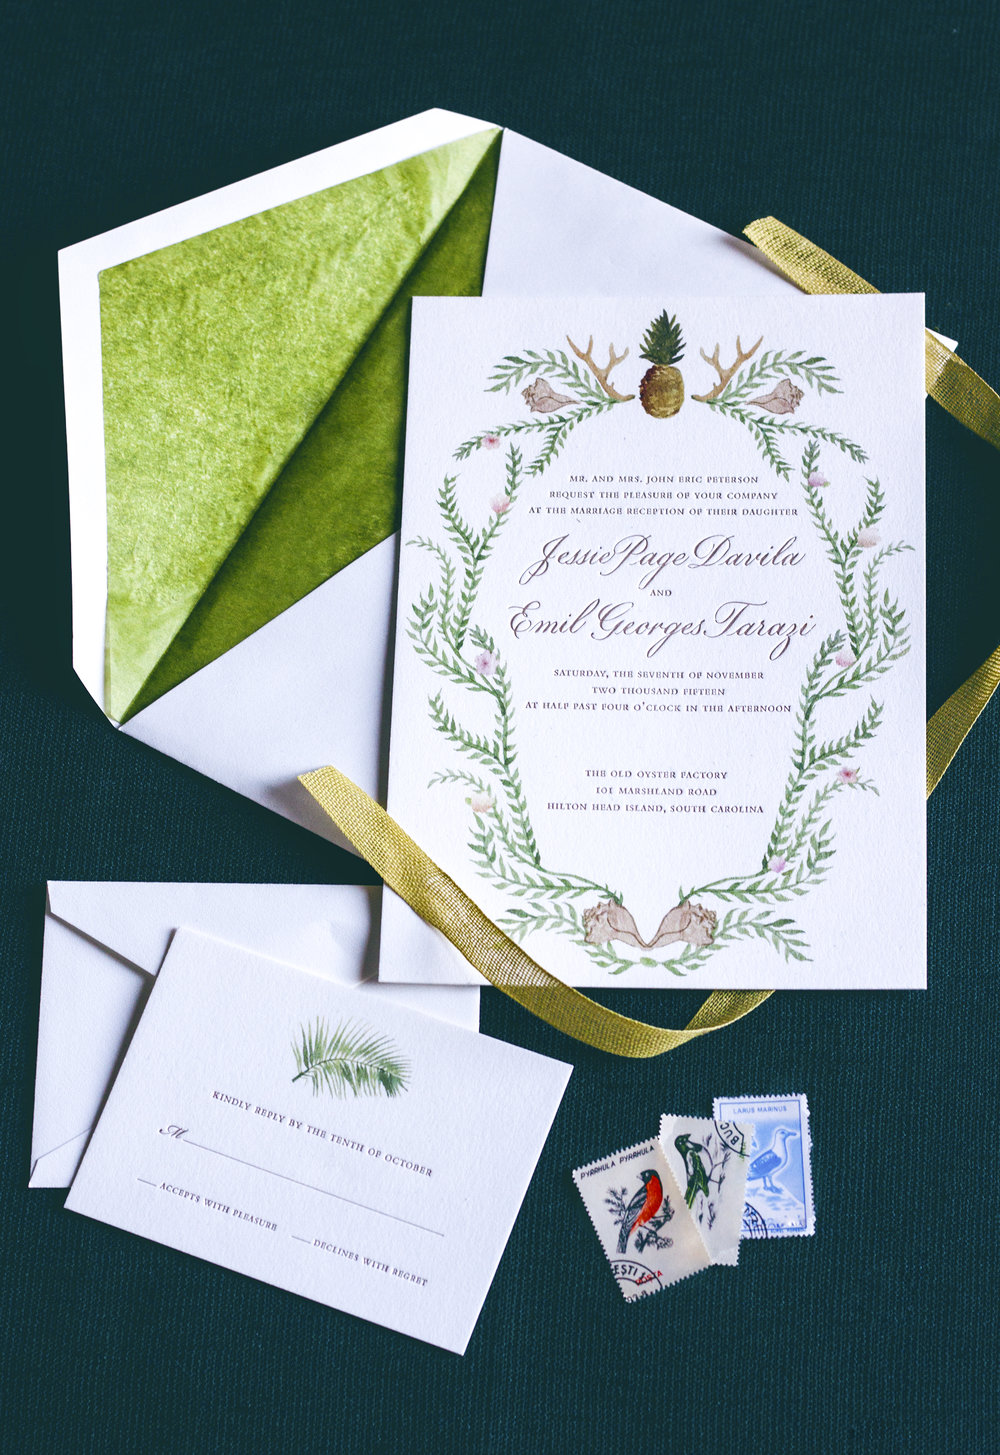 Custom designed wedding invitation suites by Chavelli | www.chavelli.com